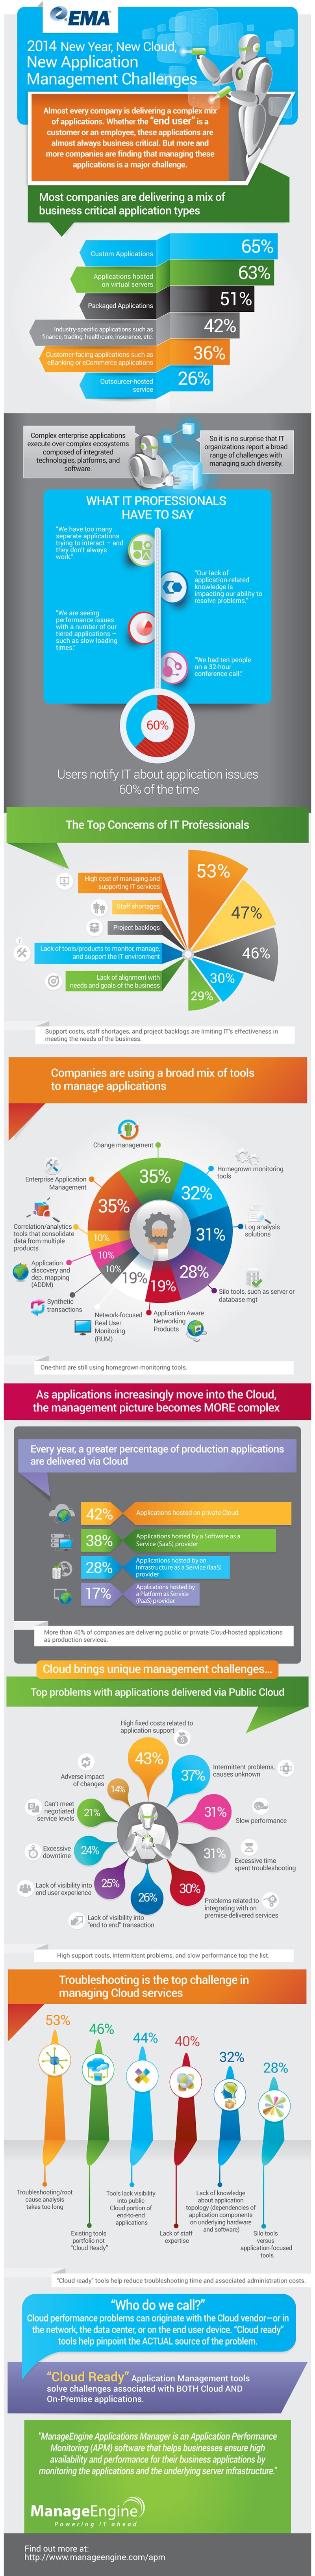 Making Sense of the New Application Management Challenges